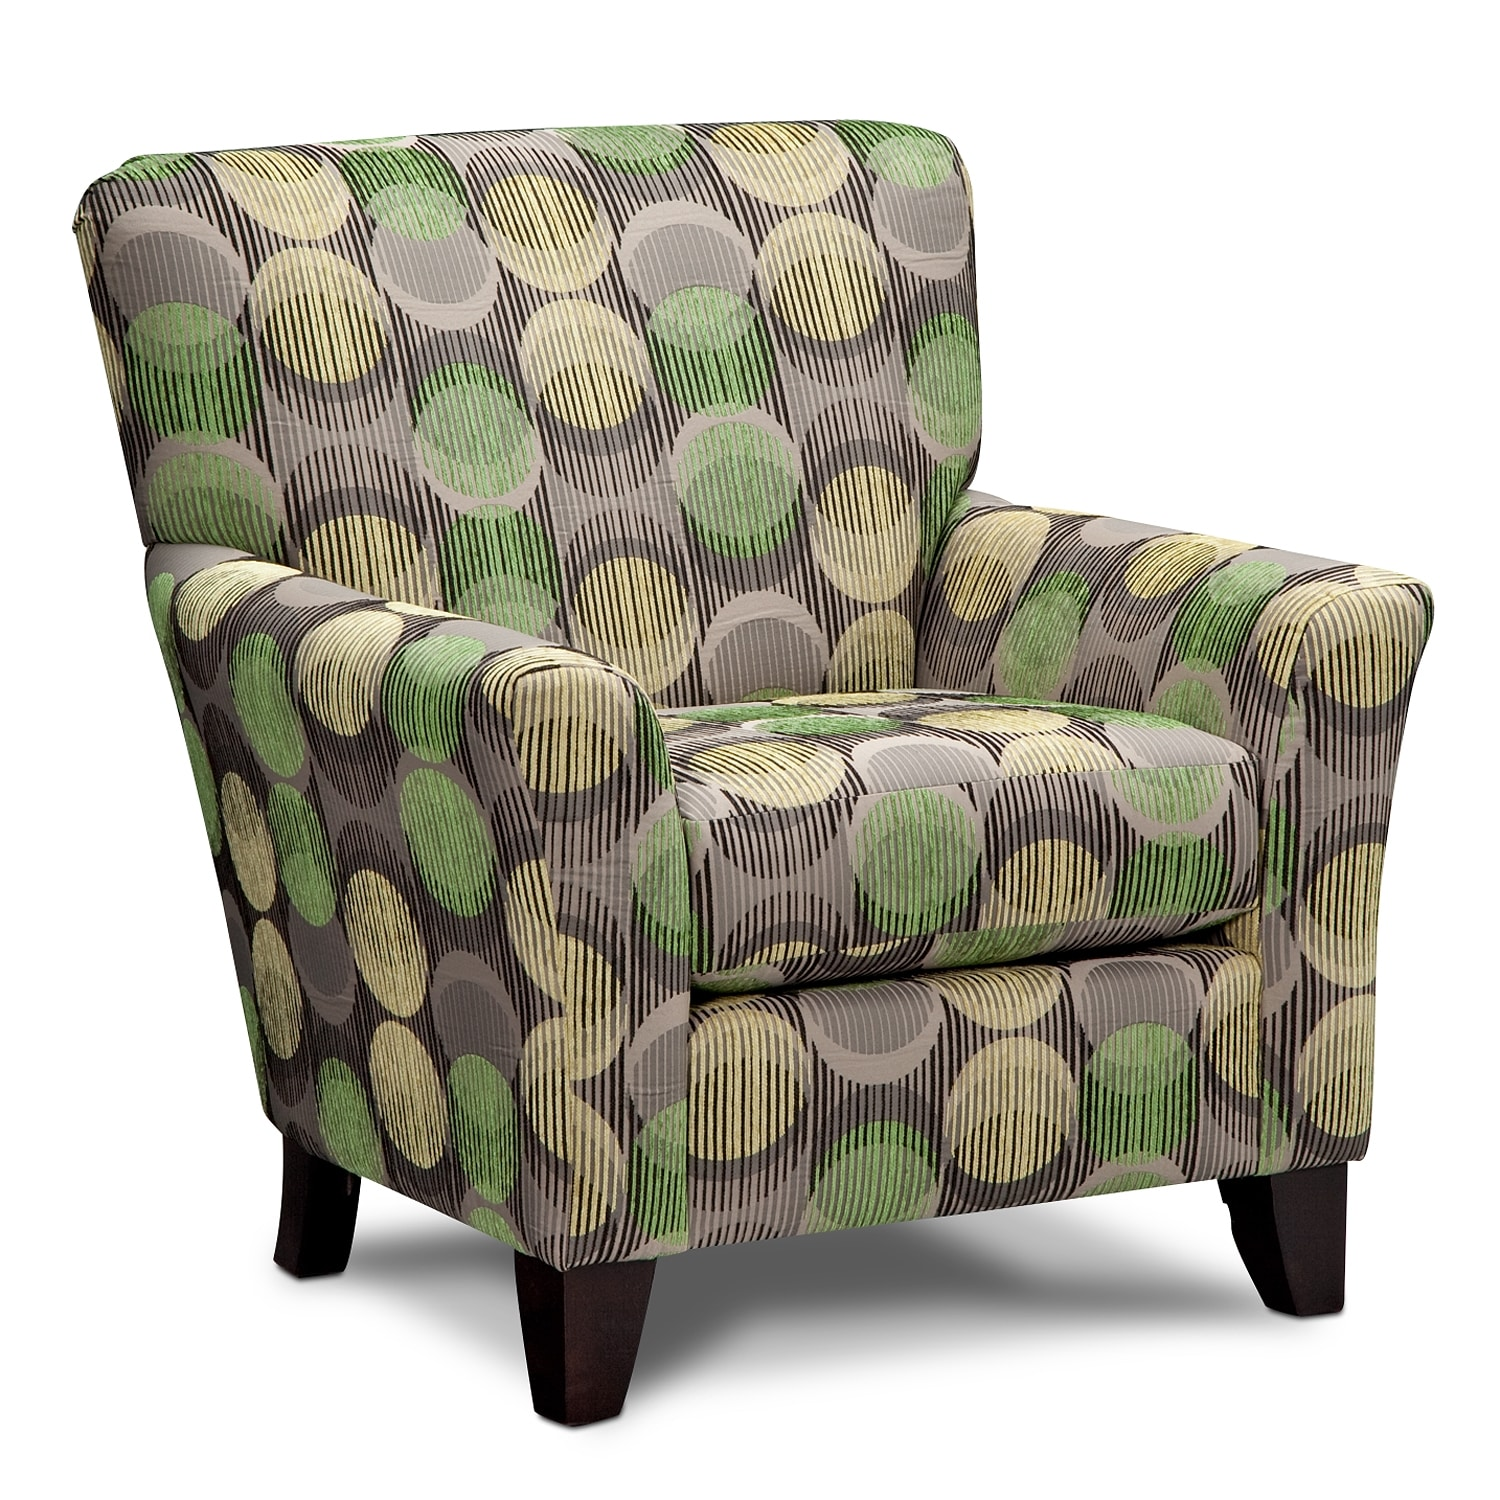 Orleans gray upholstery accent chair for Living room accent chairs